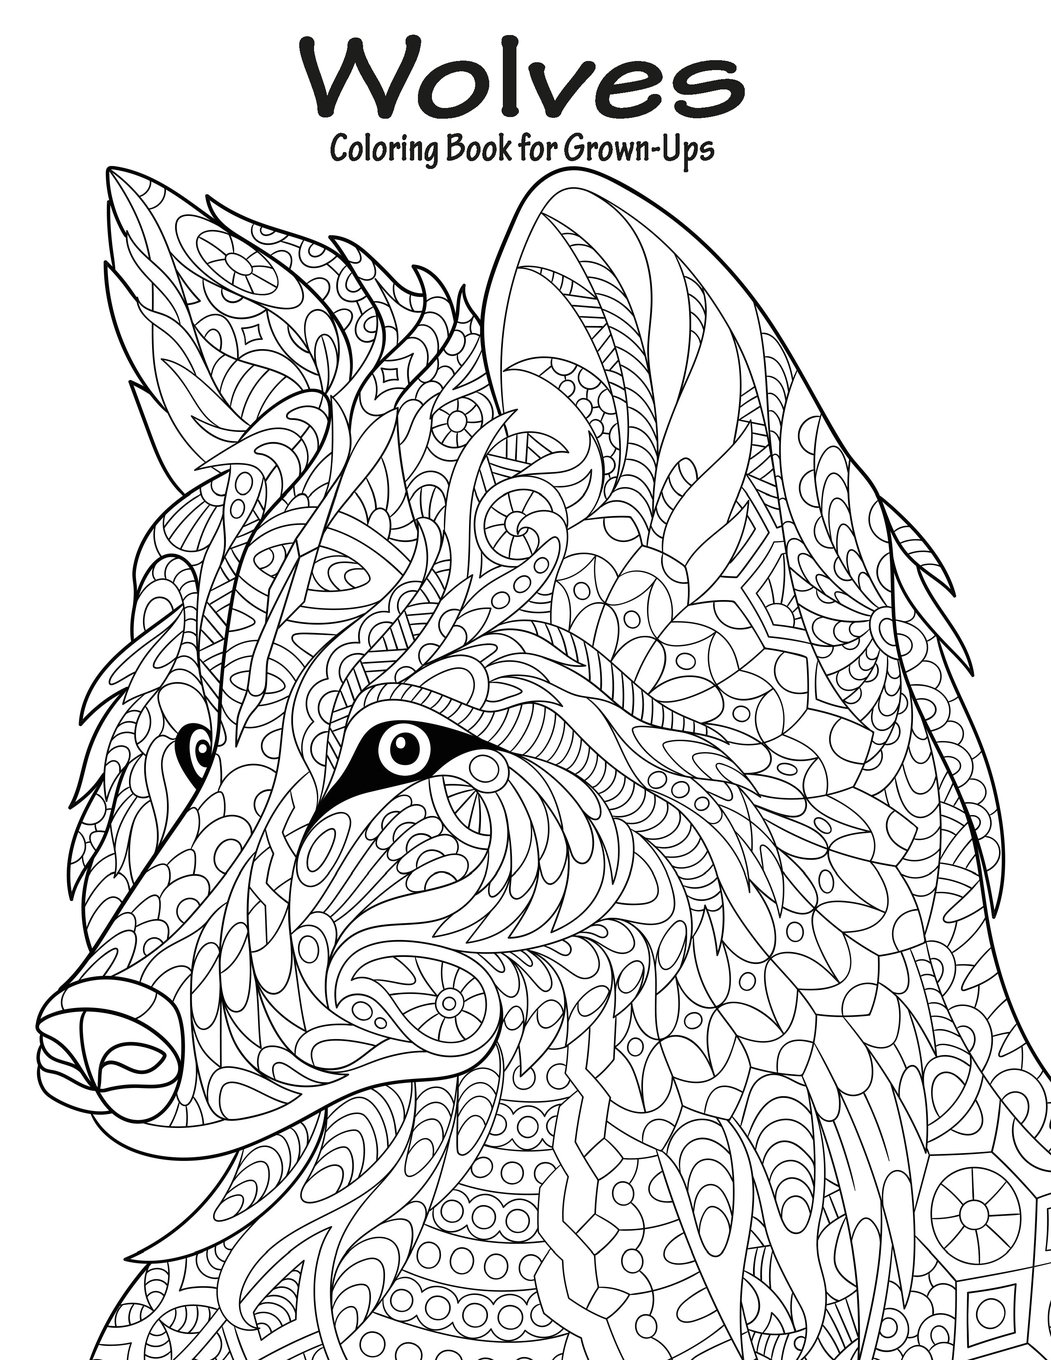 amazoncom wolves coloring book for grown ups 1 volume 1 9781523495764 nick snels books